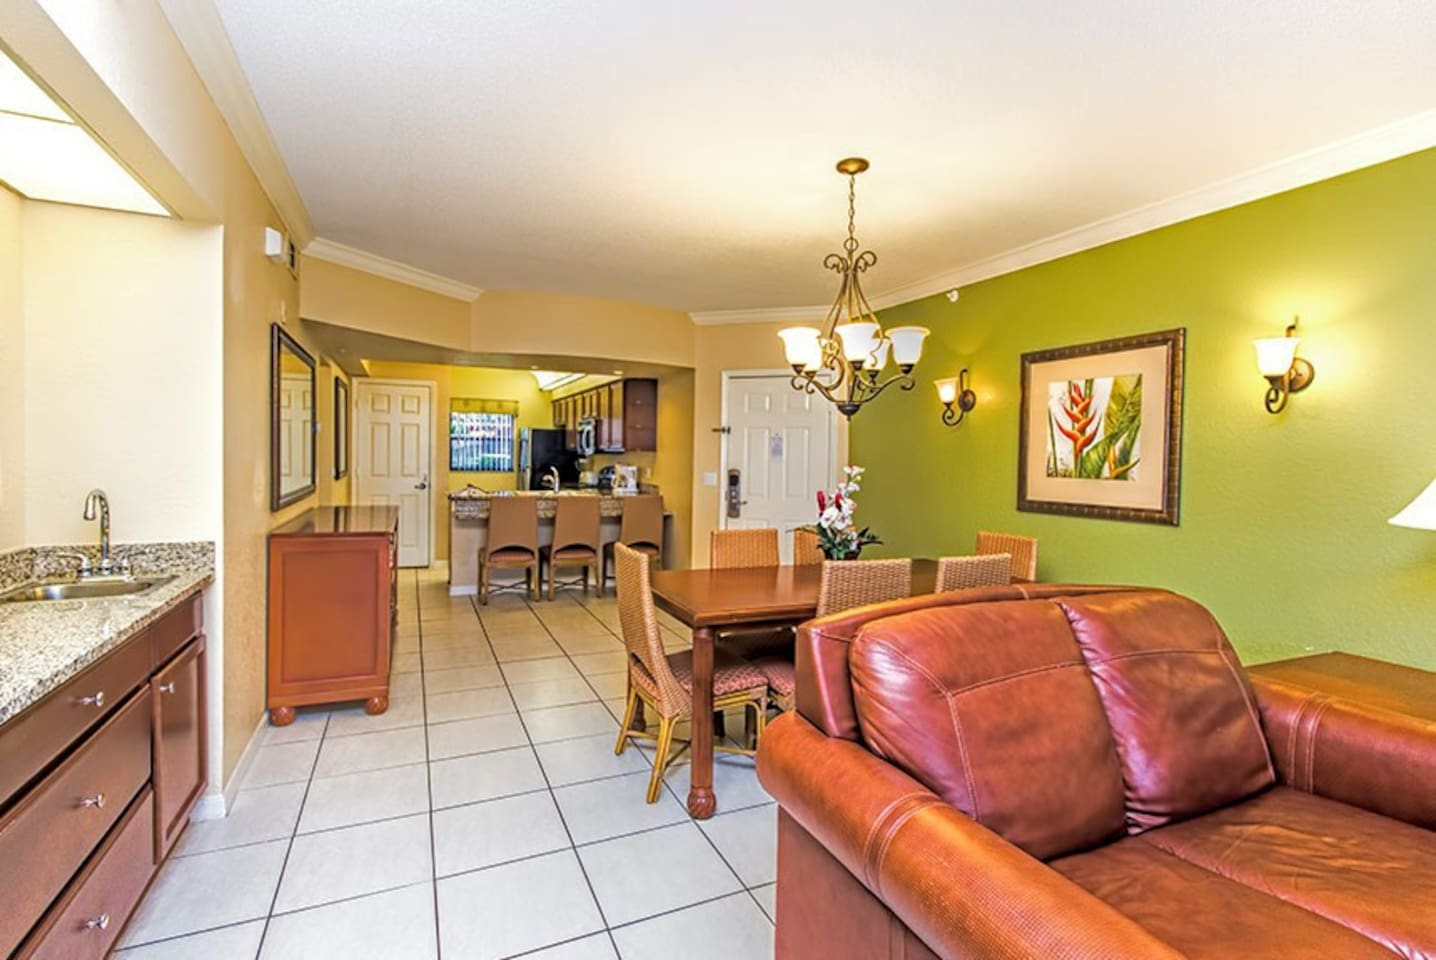 This is a 3 bedroom unit that is a 2 bedroom with a studio apartment lockout.